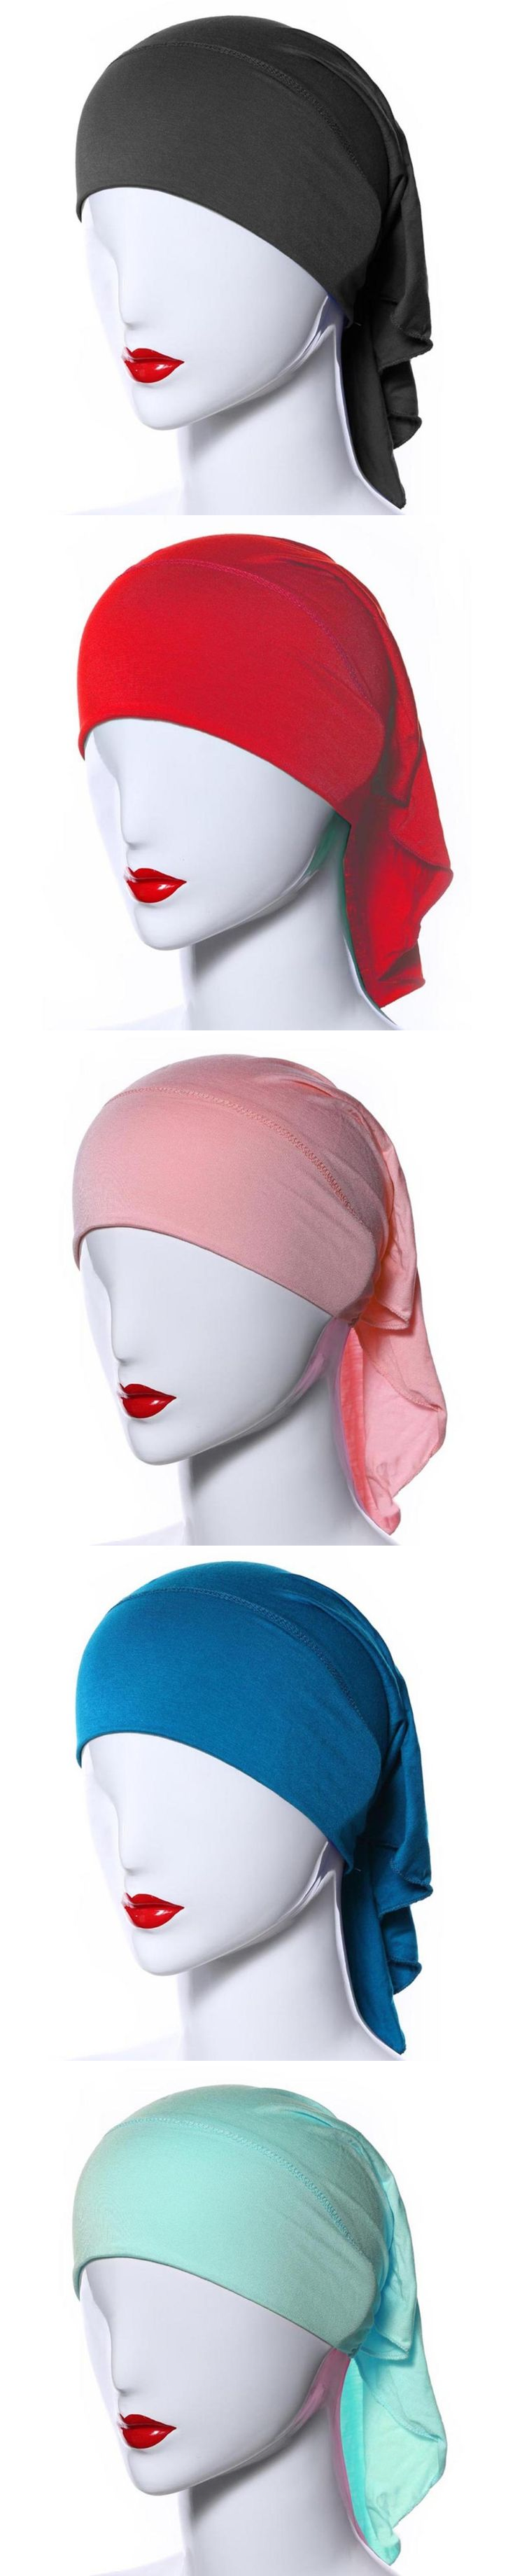 Muslim Headscarf Women Soft Comfortable Inner Hijab Caps Islamic Underscarf Hats Hot PY3